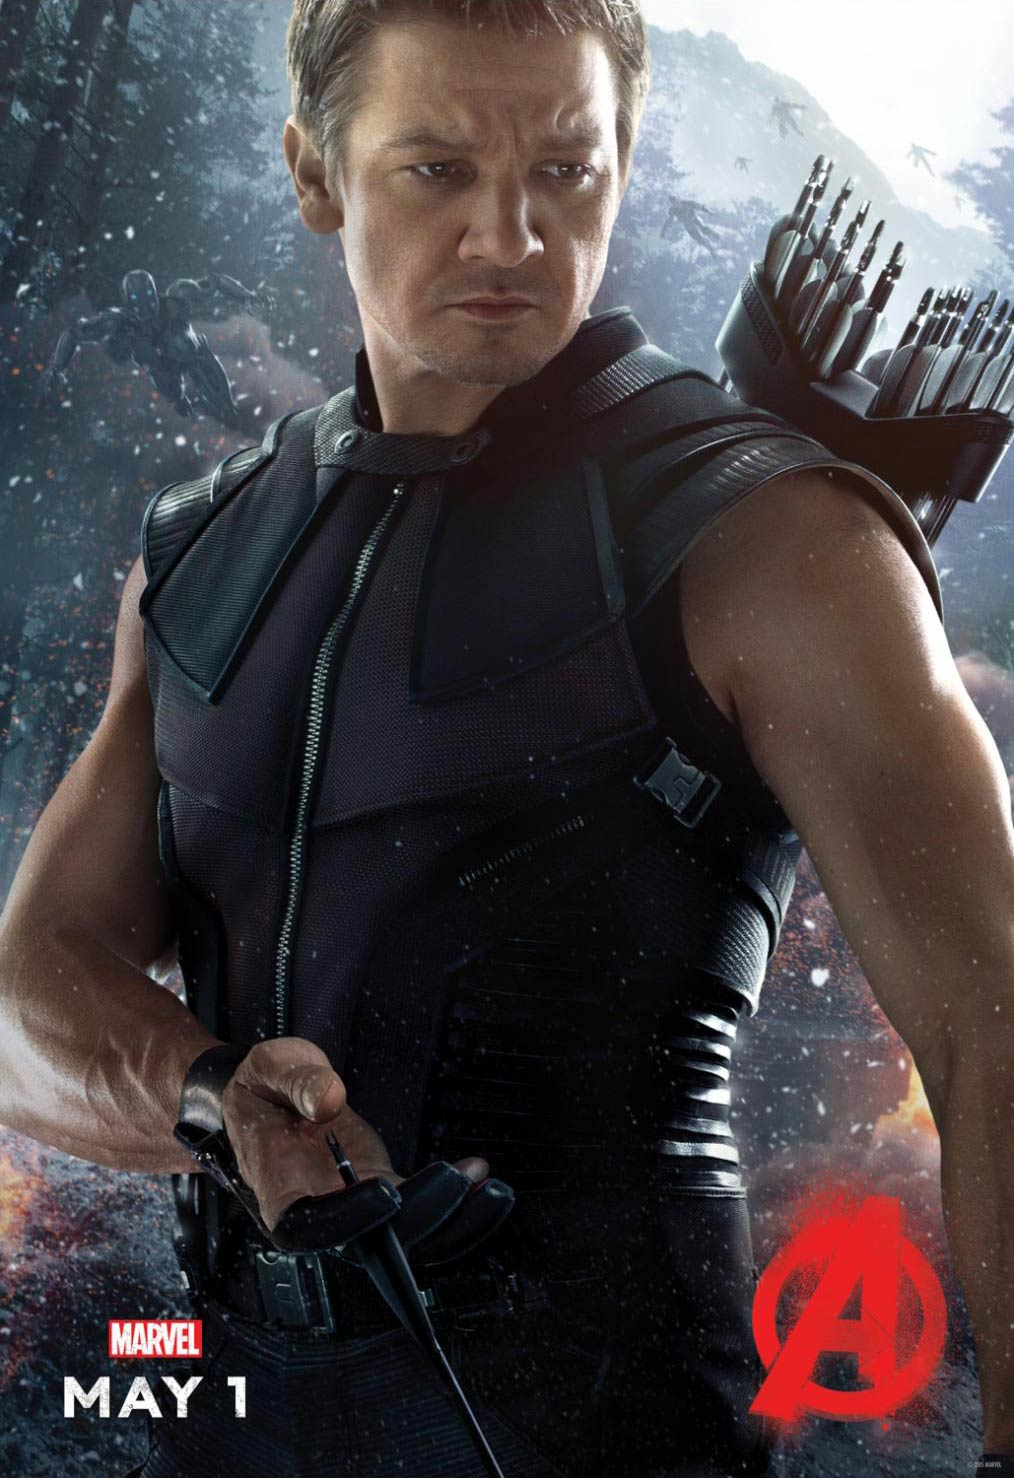 <strong>Jeremy Renner as Hawkeye</strong>